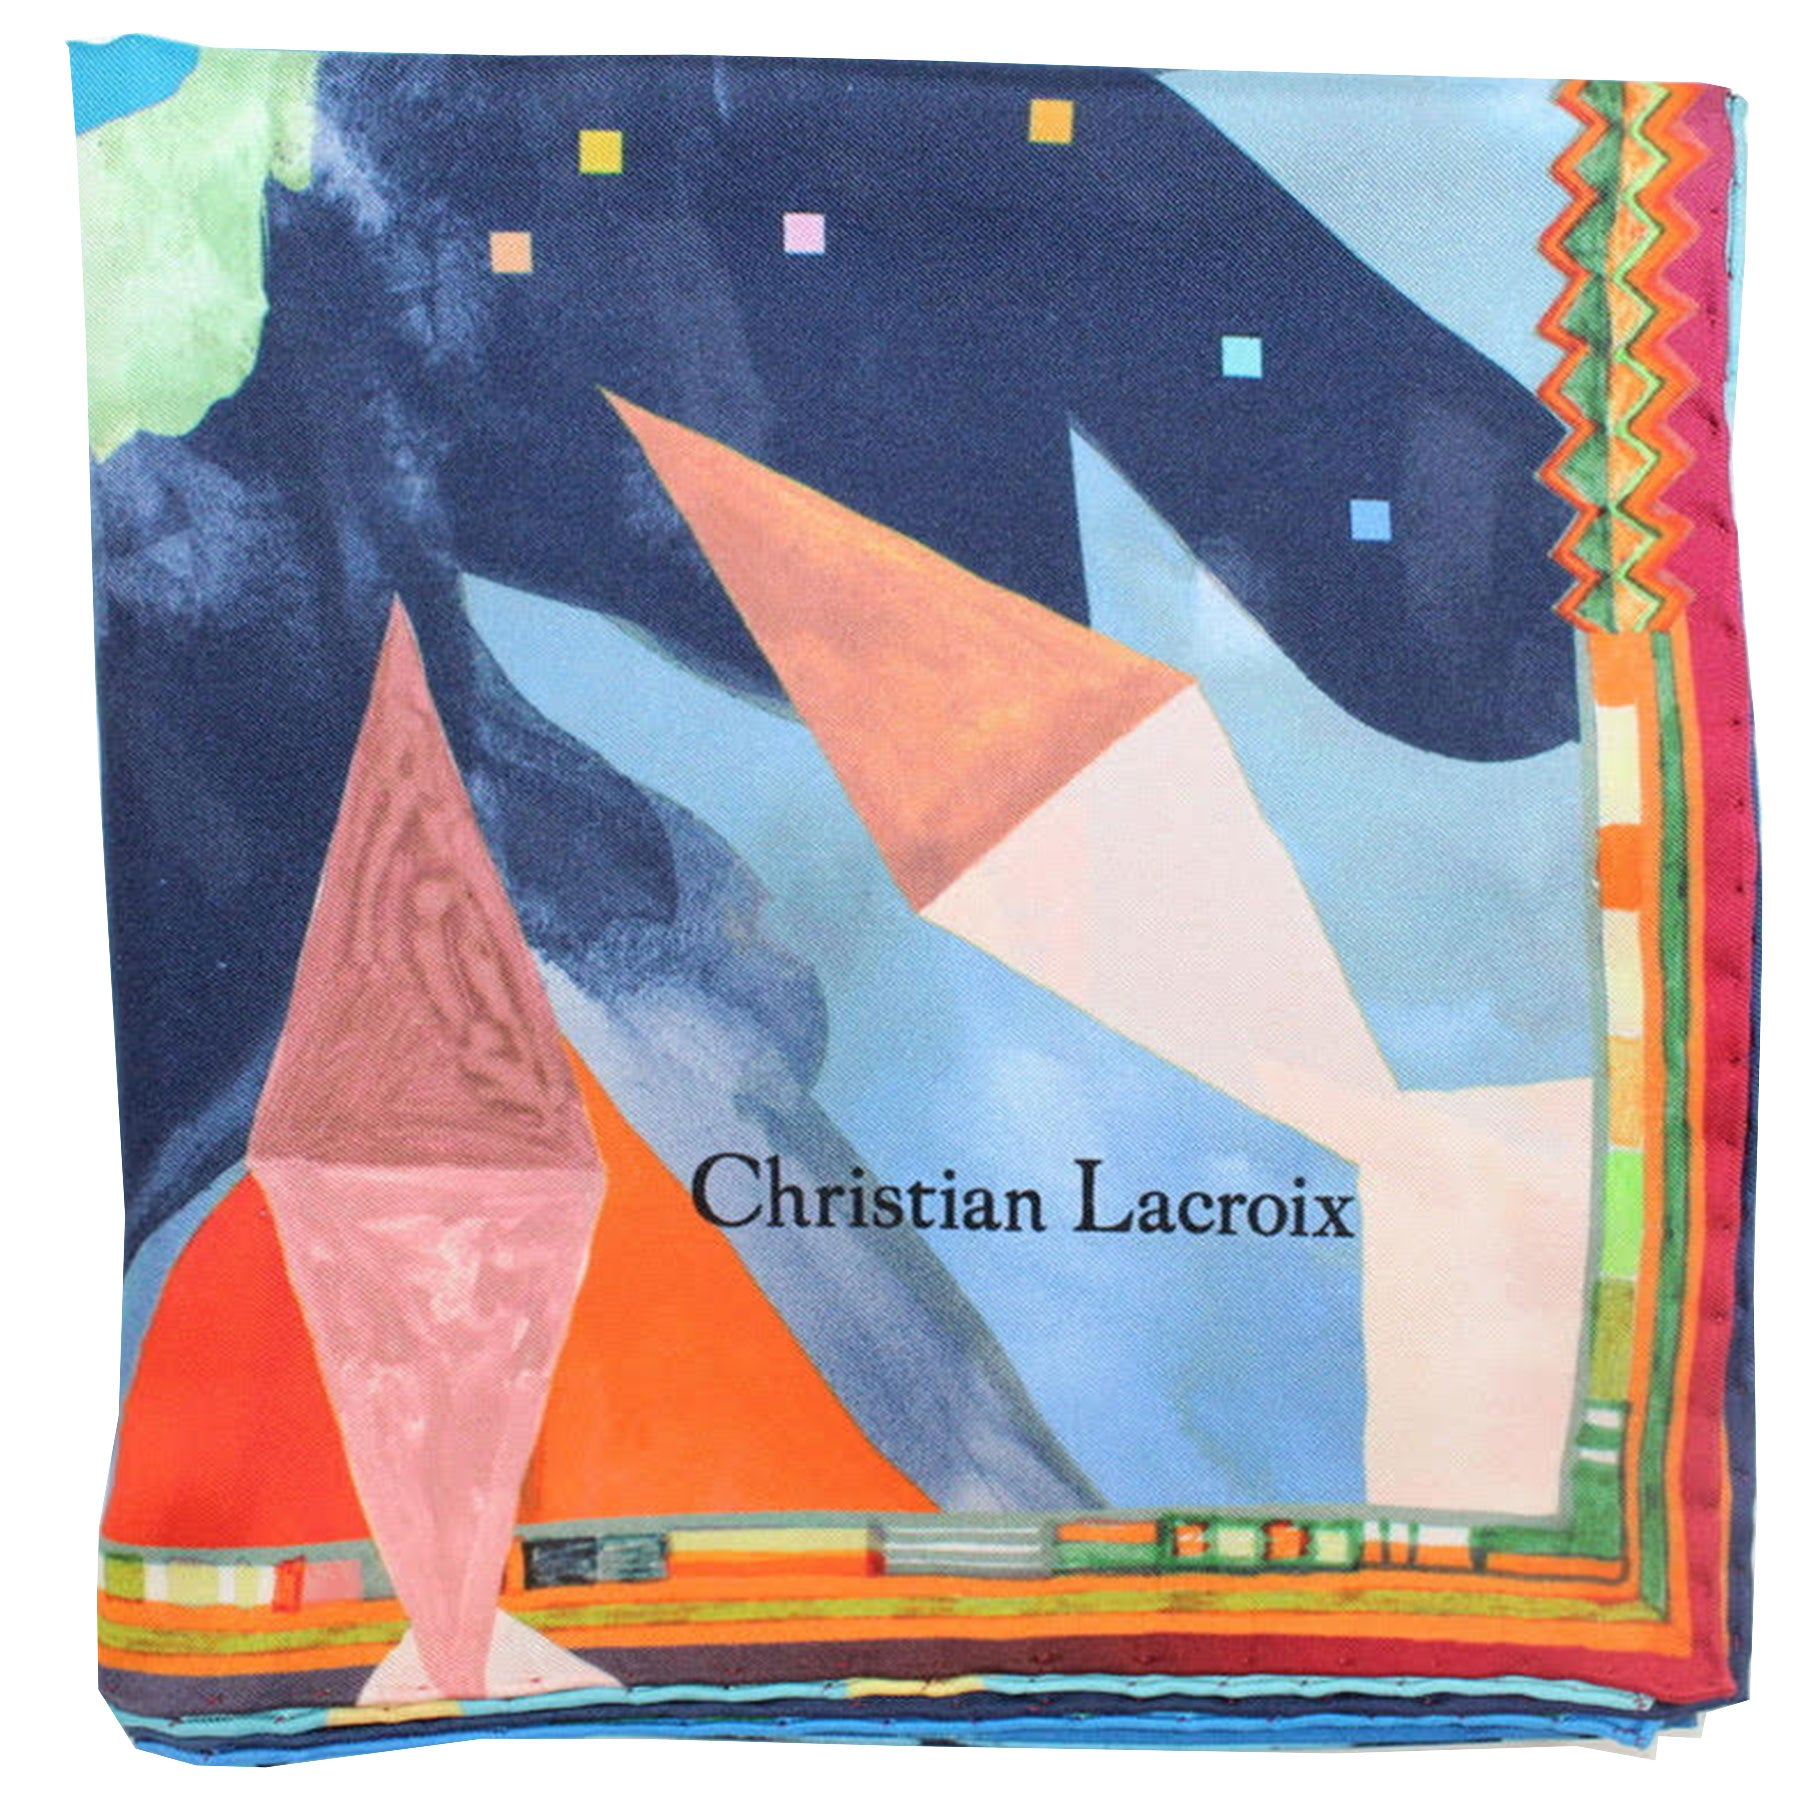 Christian Lacroix Scarf 20 Ans Design Orange Blue Green Novelty - Large Twill Silk Square Scarf